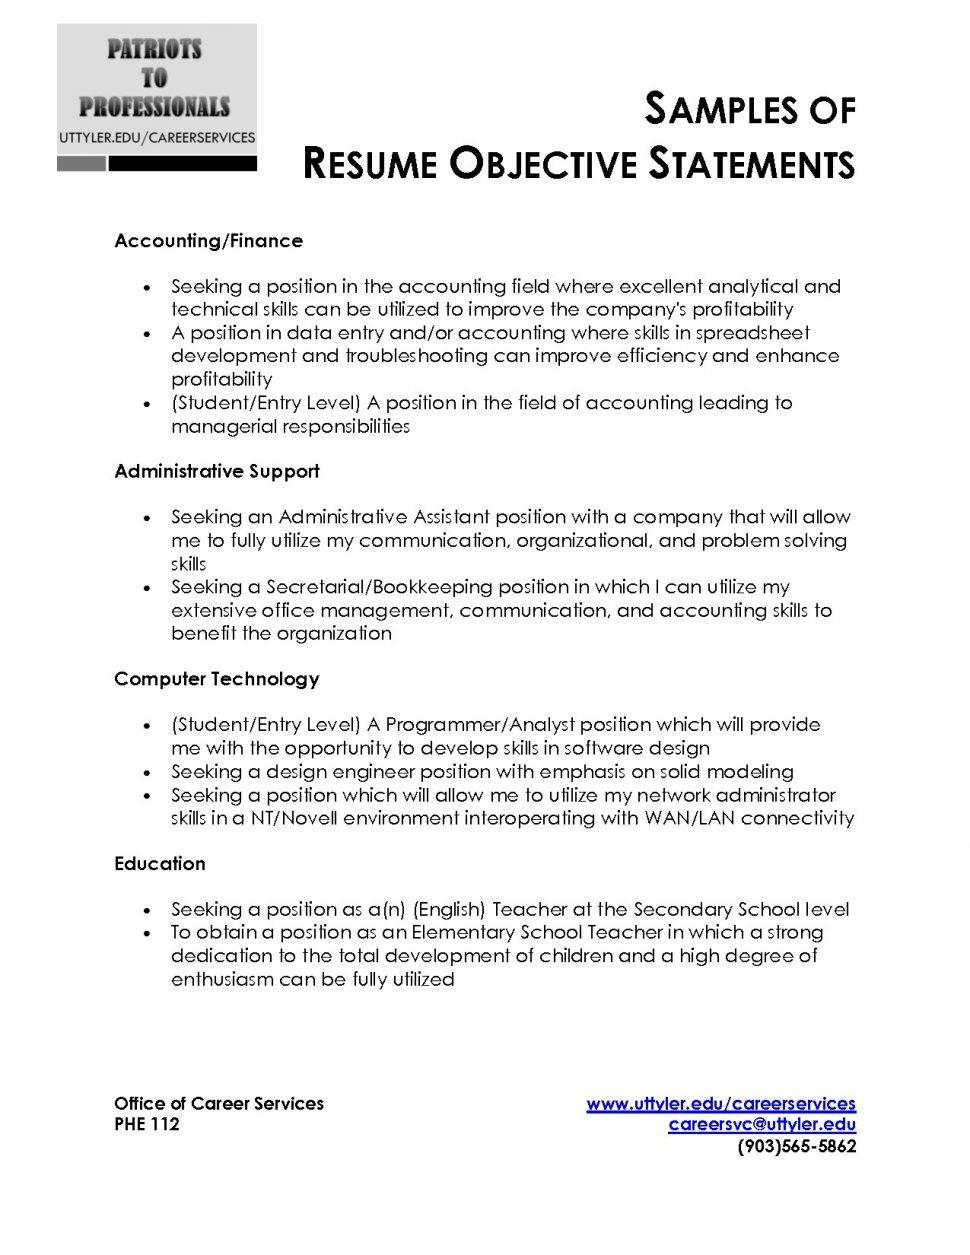 18 Awesome Customer Service Resume Objective Or Summary Examples for Gallery